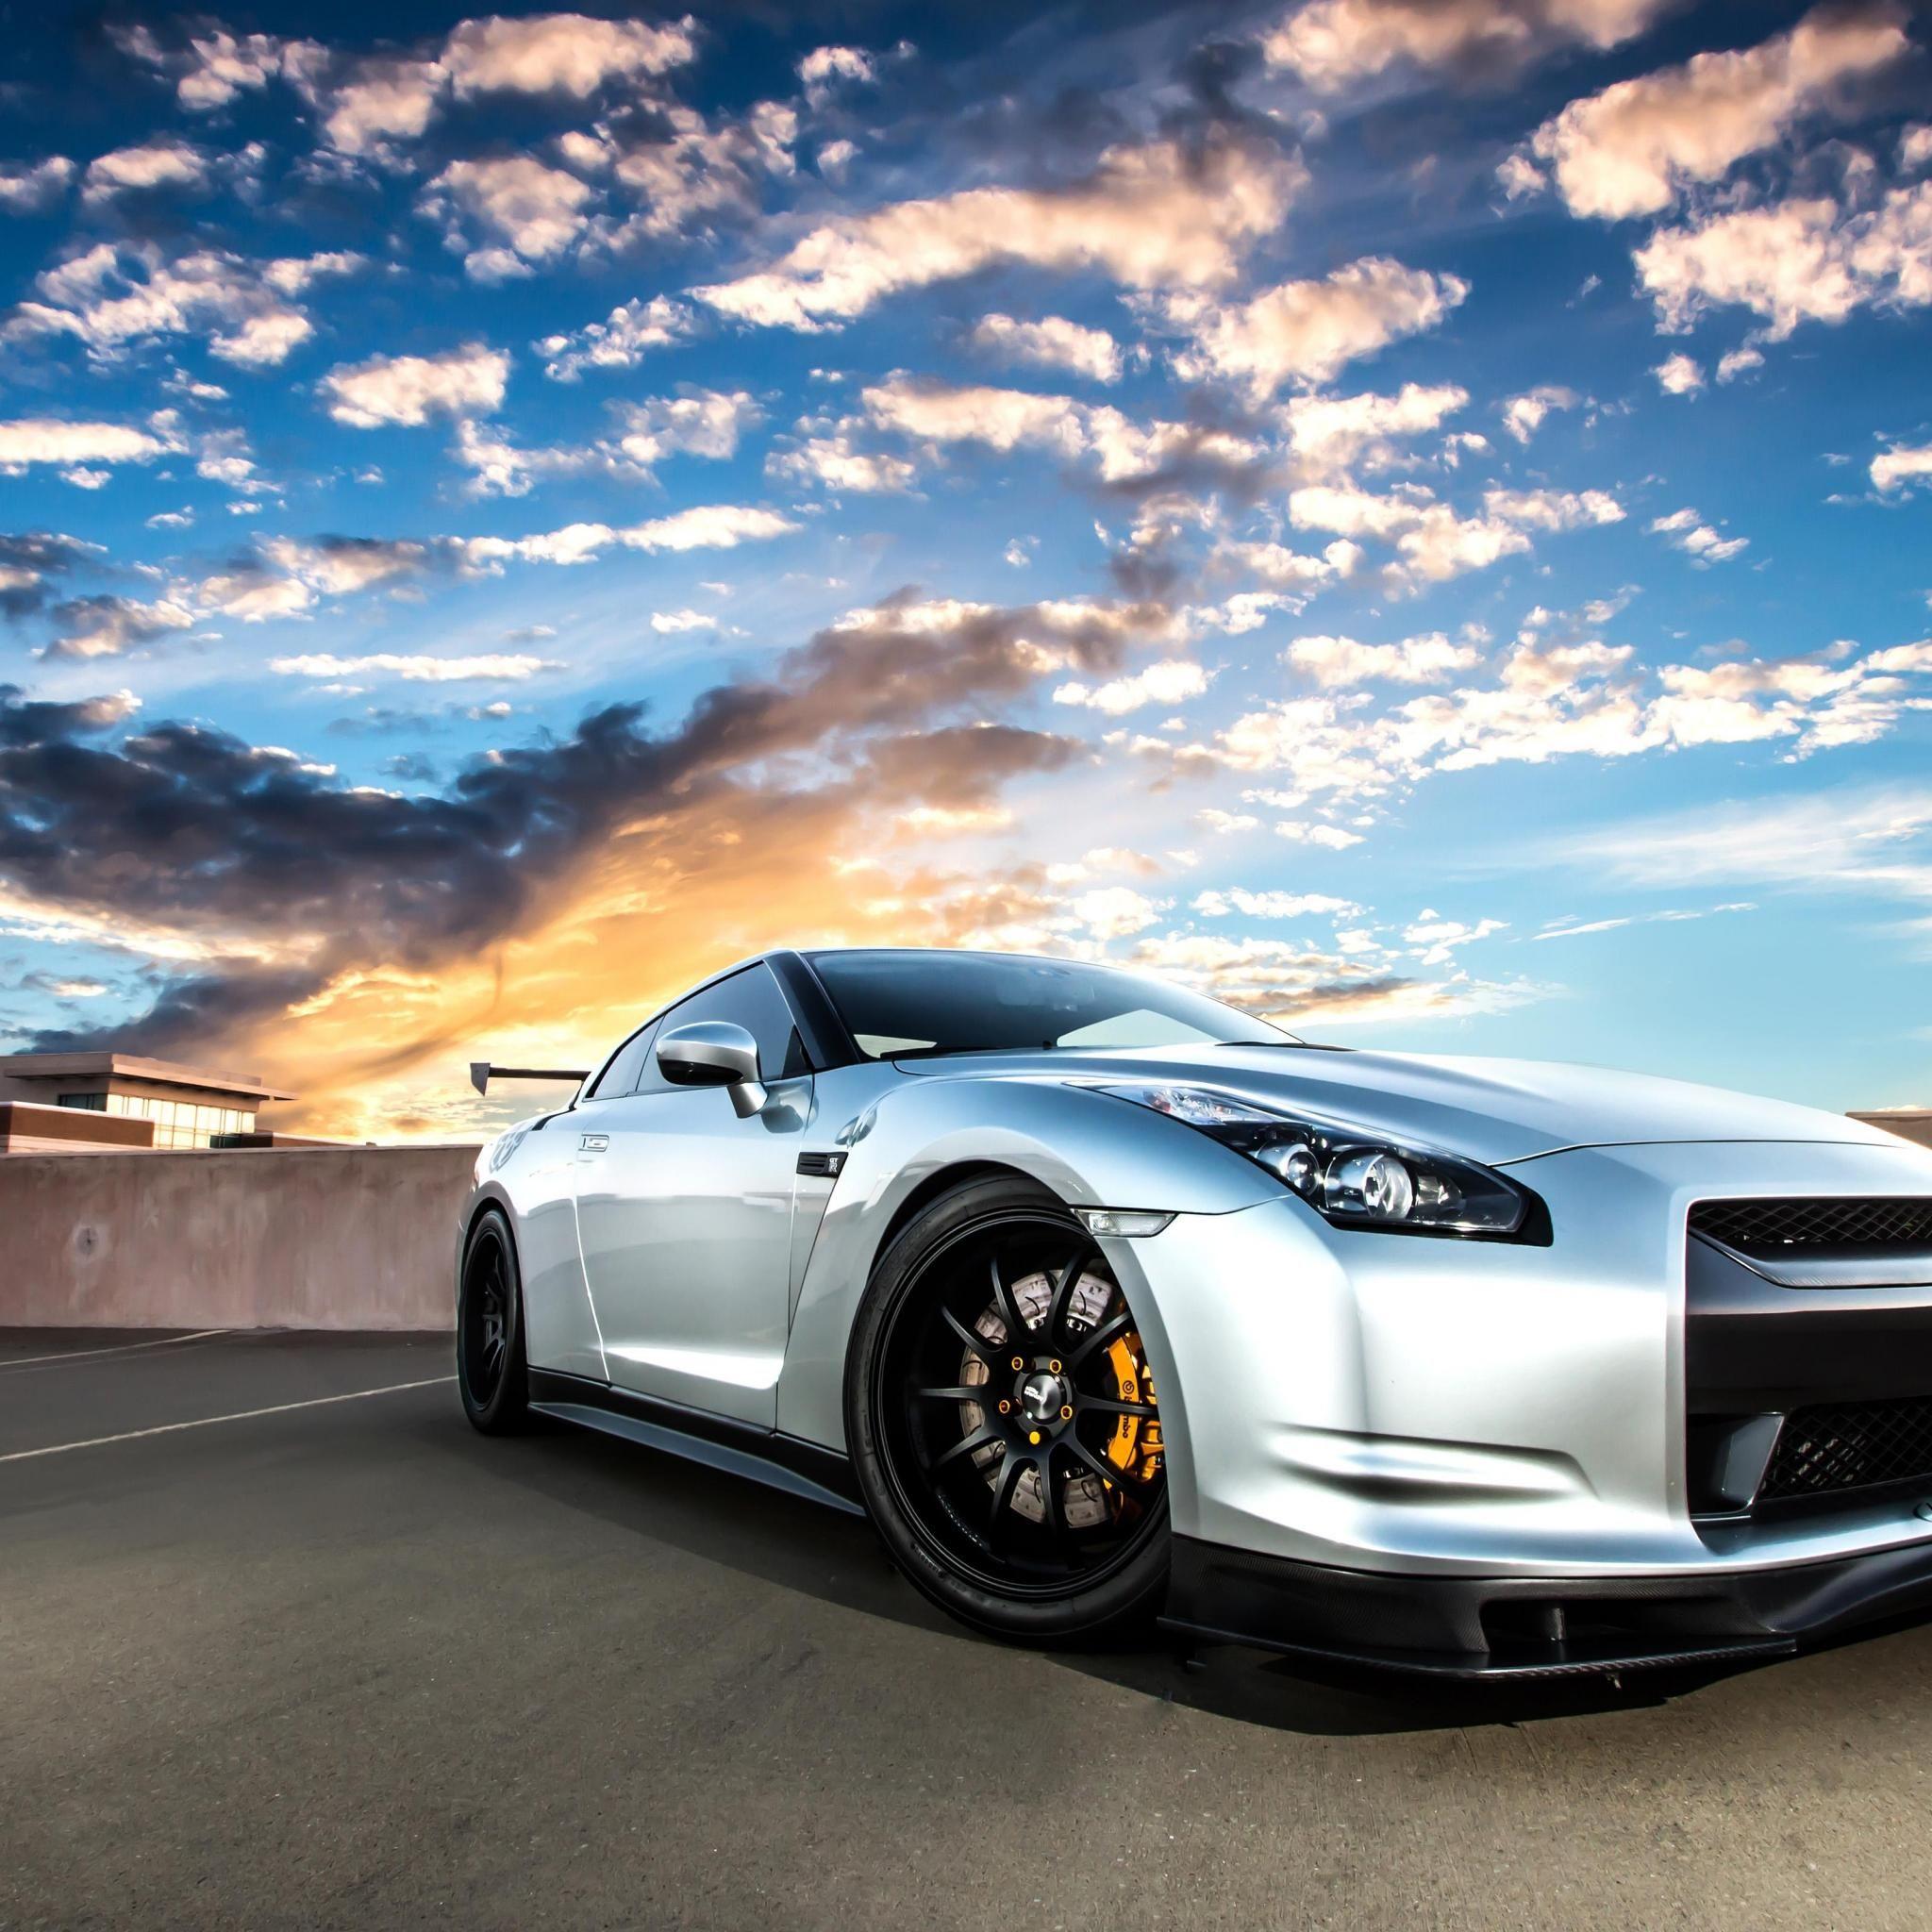 Nissan Gtr Ipad Wallpaper